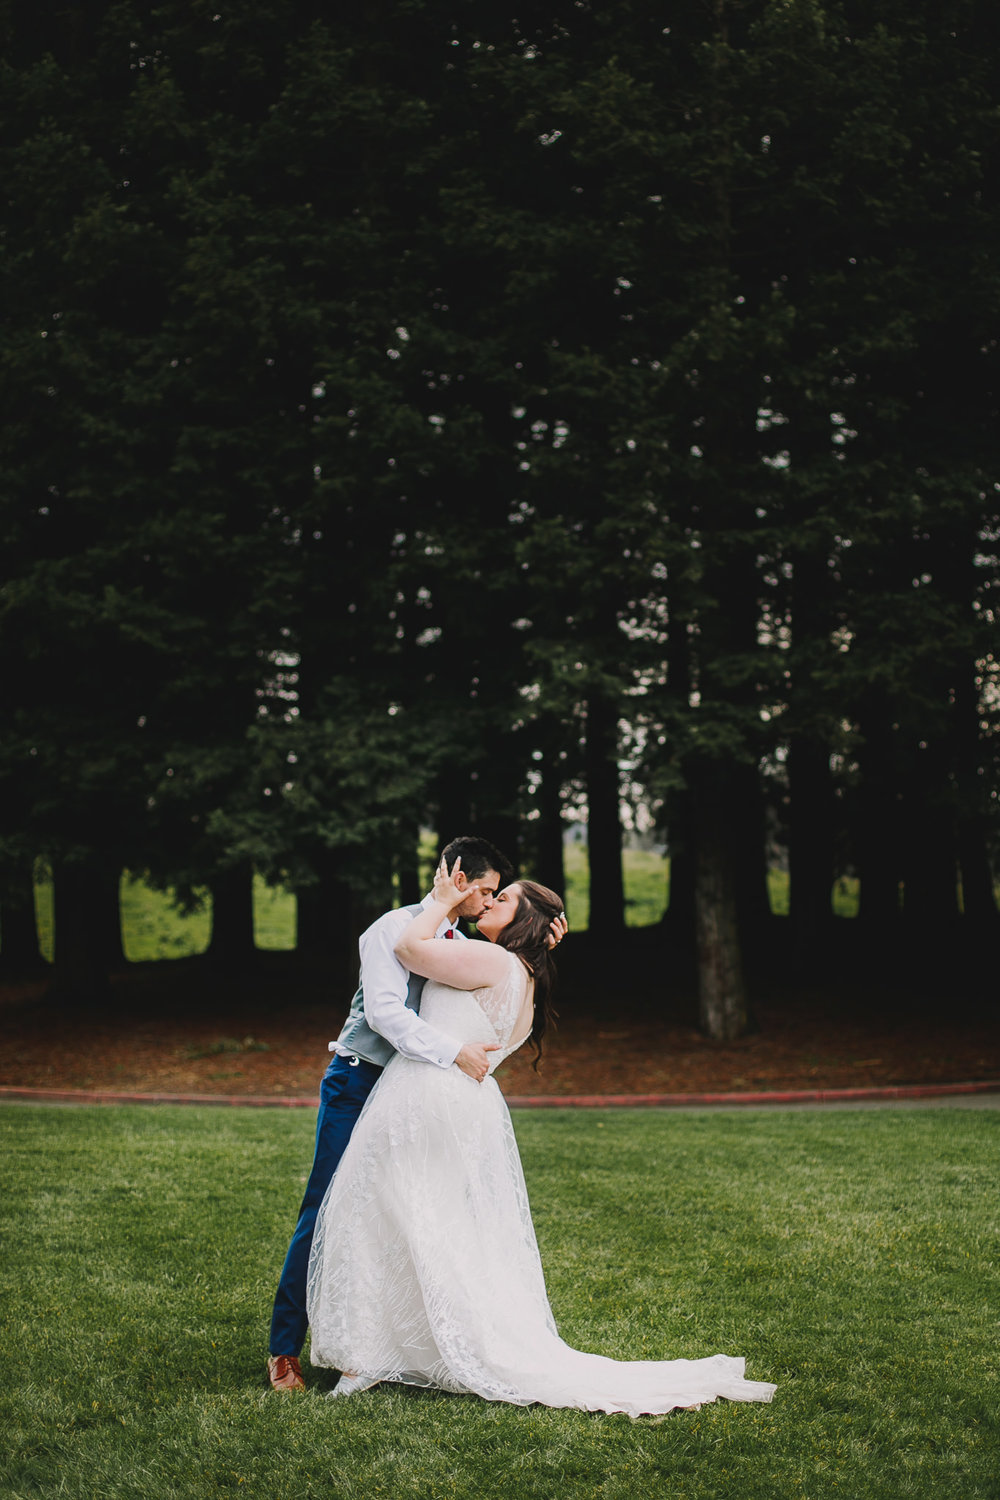 Archer Inspired Photography Shelby and Ben Wedding Sally Tomatoes NorCal Rohnert Park California-98.jpg